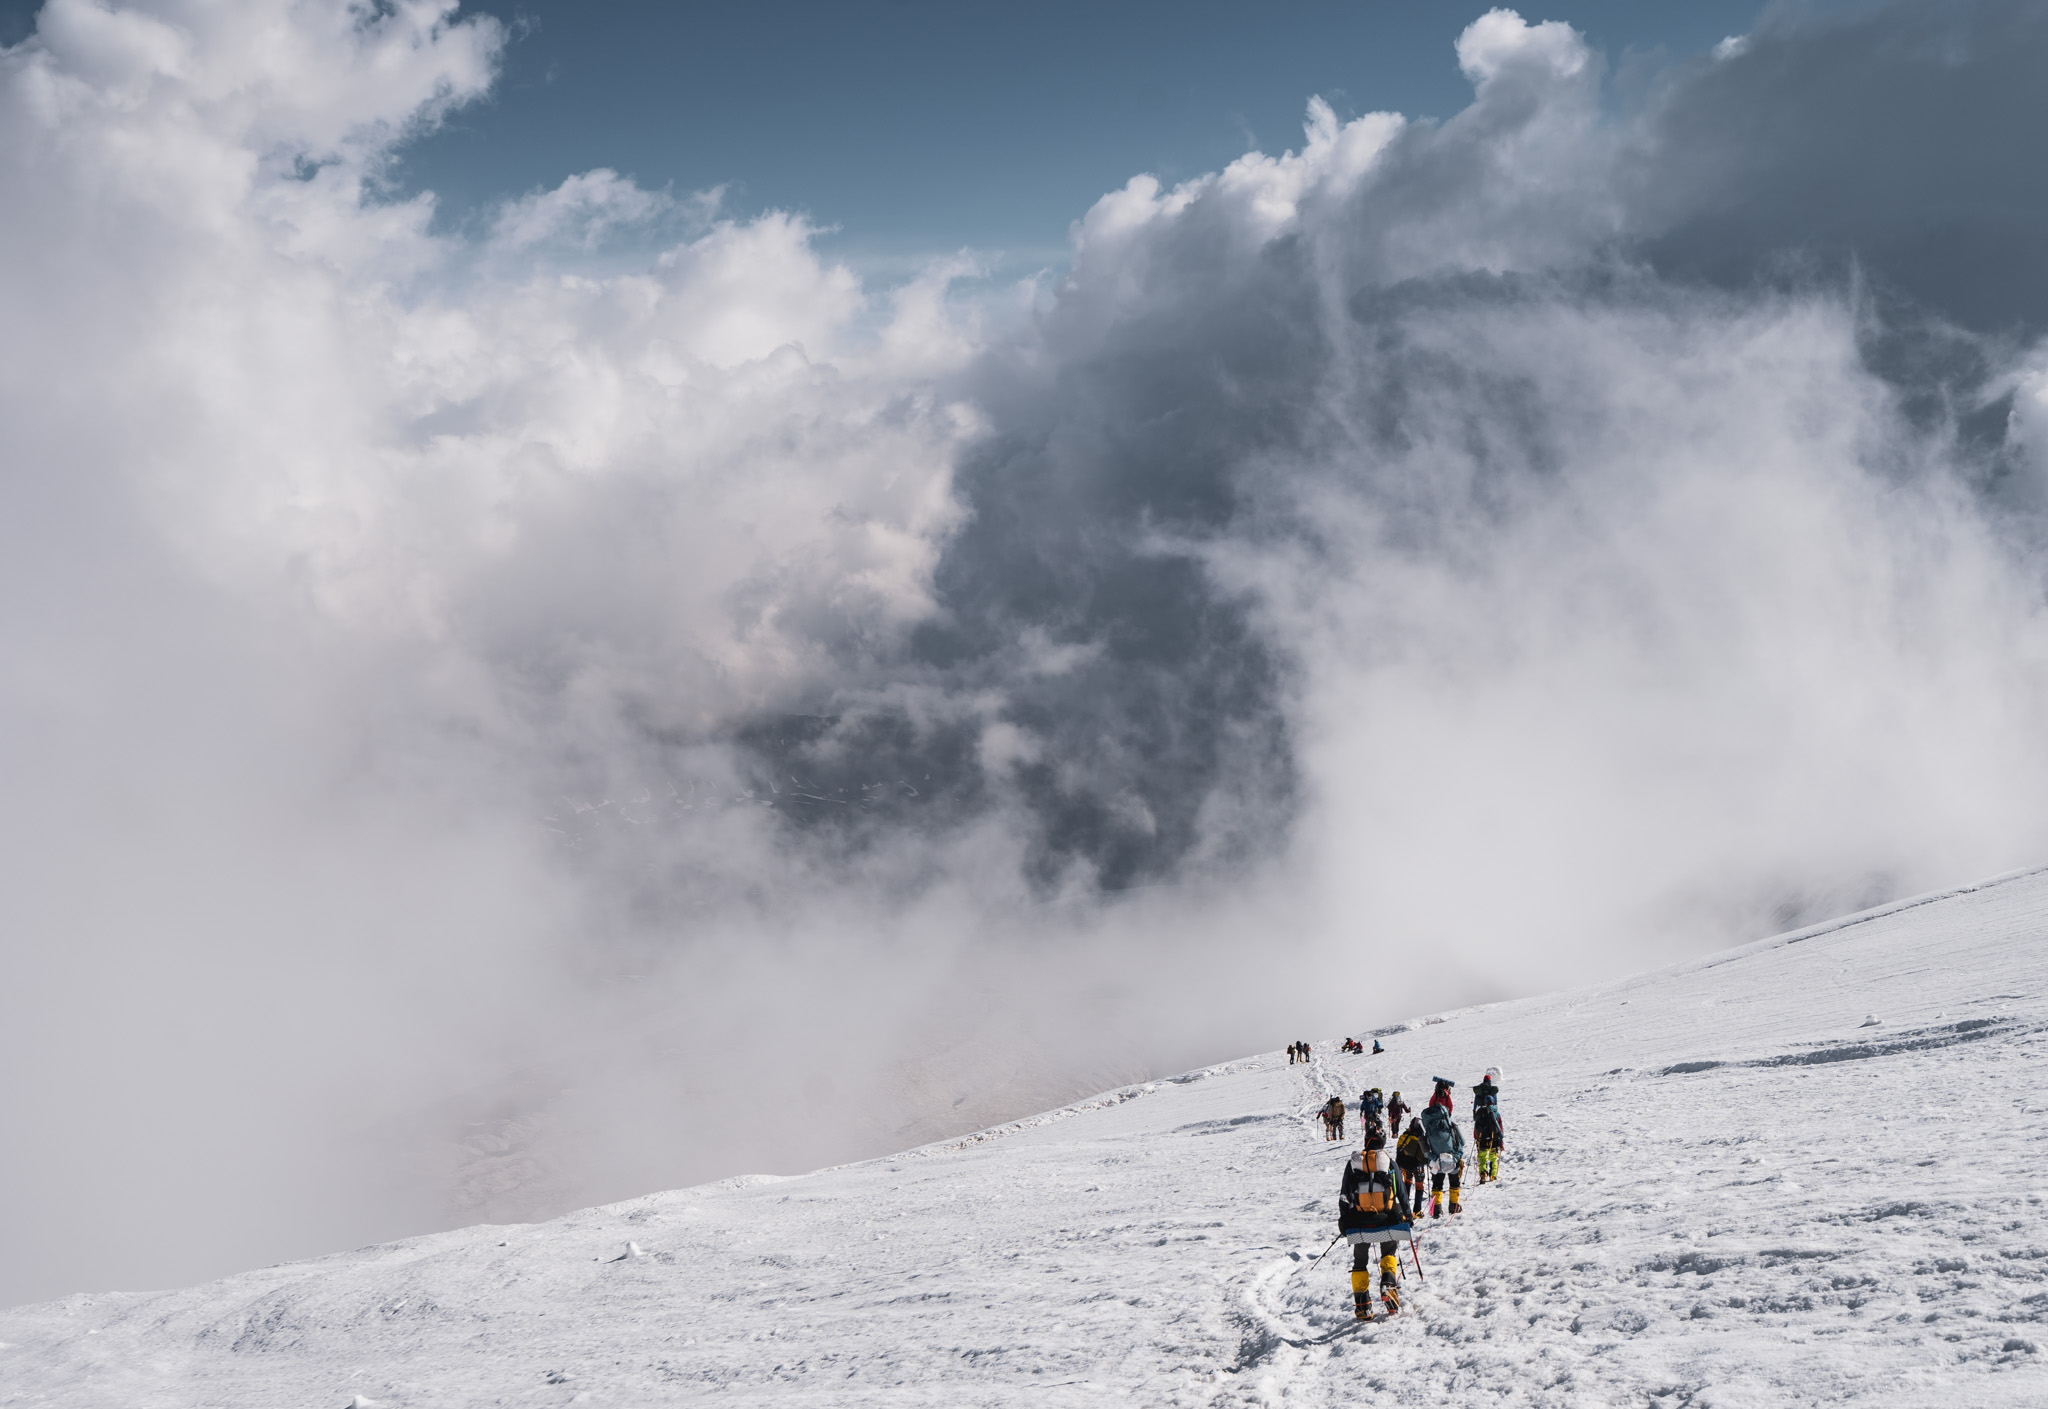 Climbing in the clouds between Camp 1 and Camp 2 on Lenin Peak